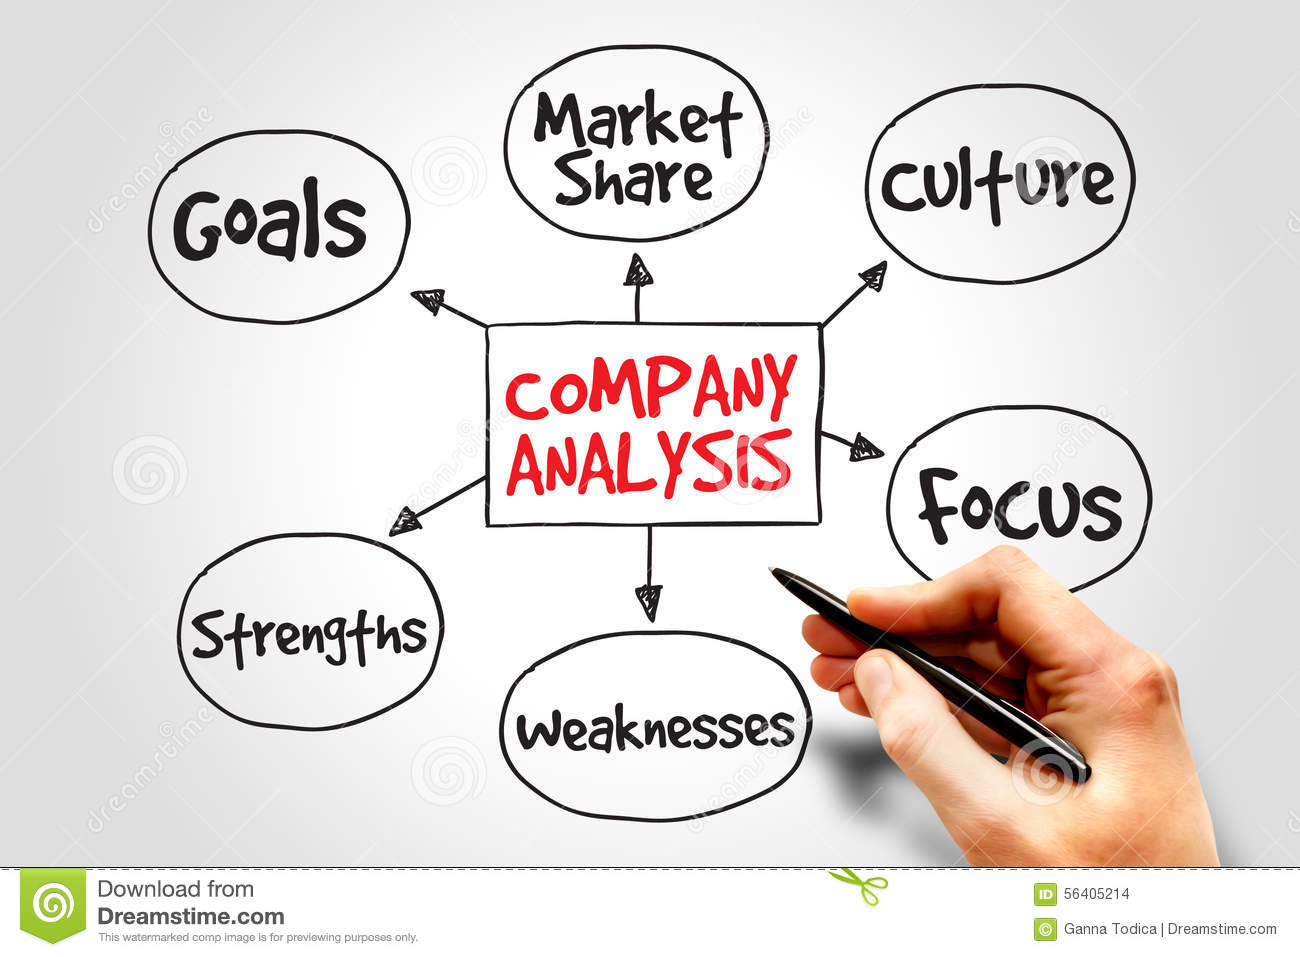 an analysis of the corporation Looking for newest microsoft corporation swot analysis for 2013 click here to find the example of microsoft's strengths, weaknesses, opportunities and threats.